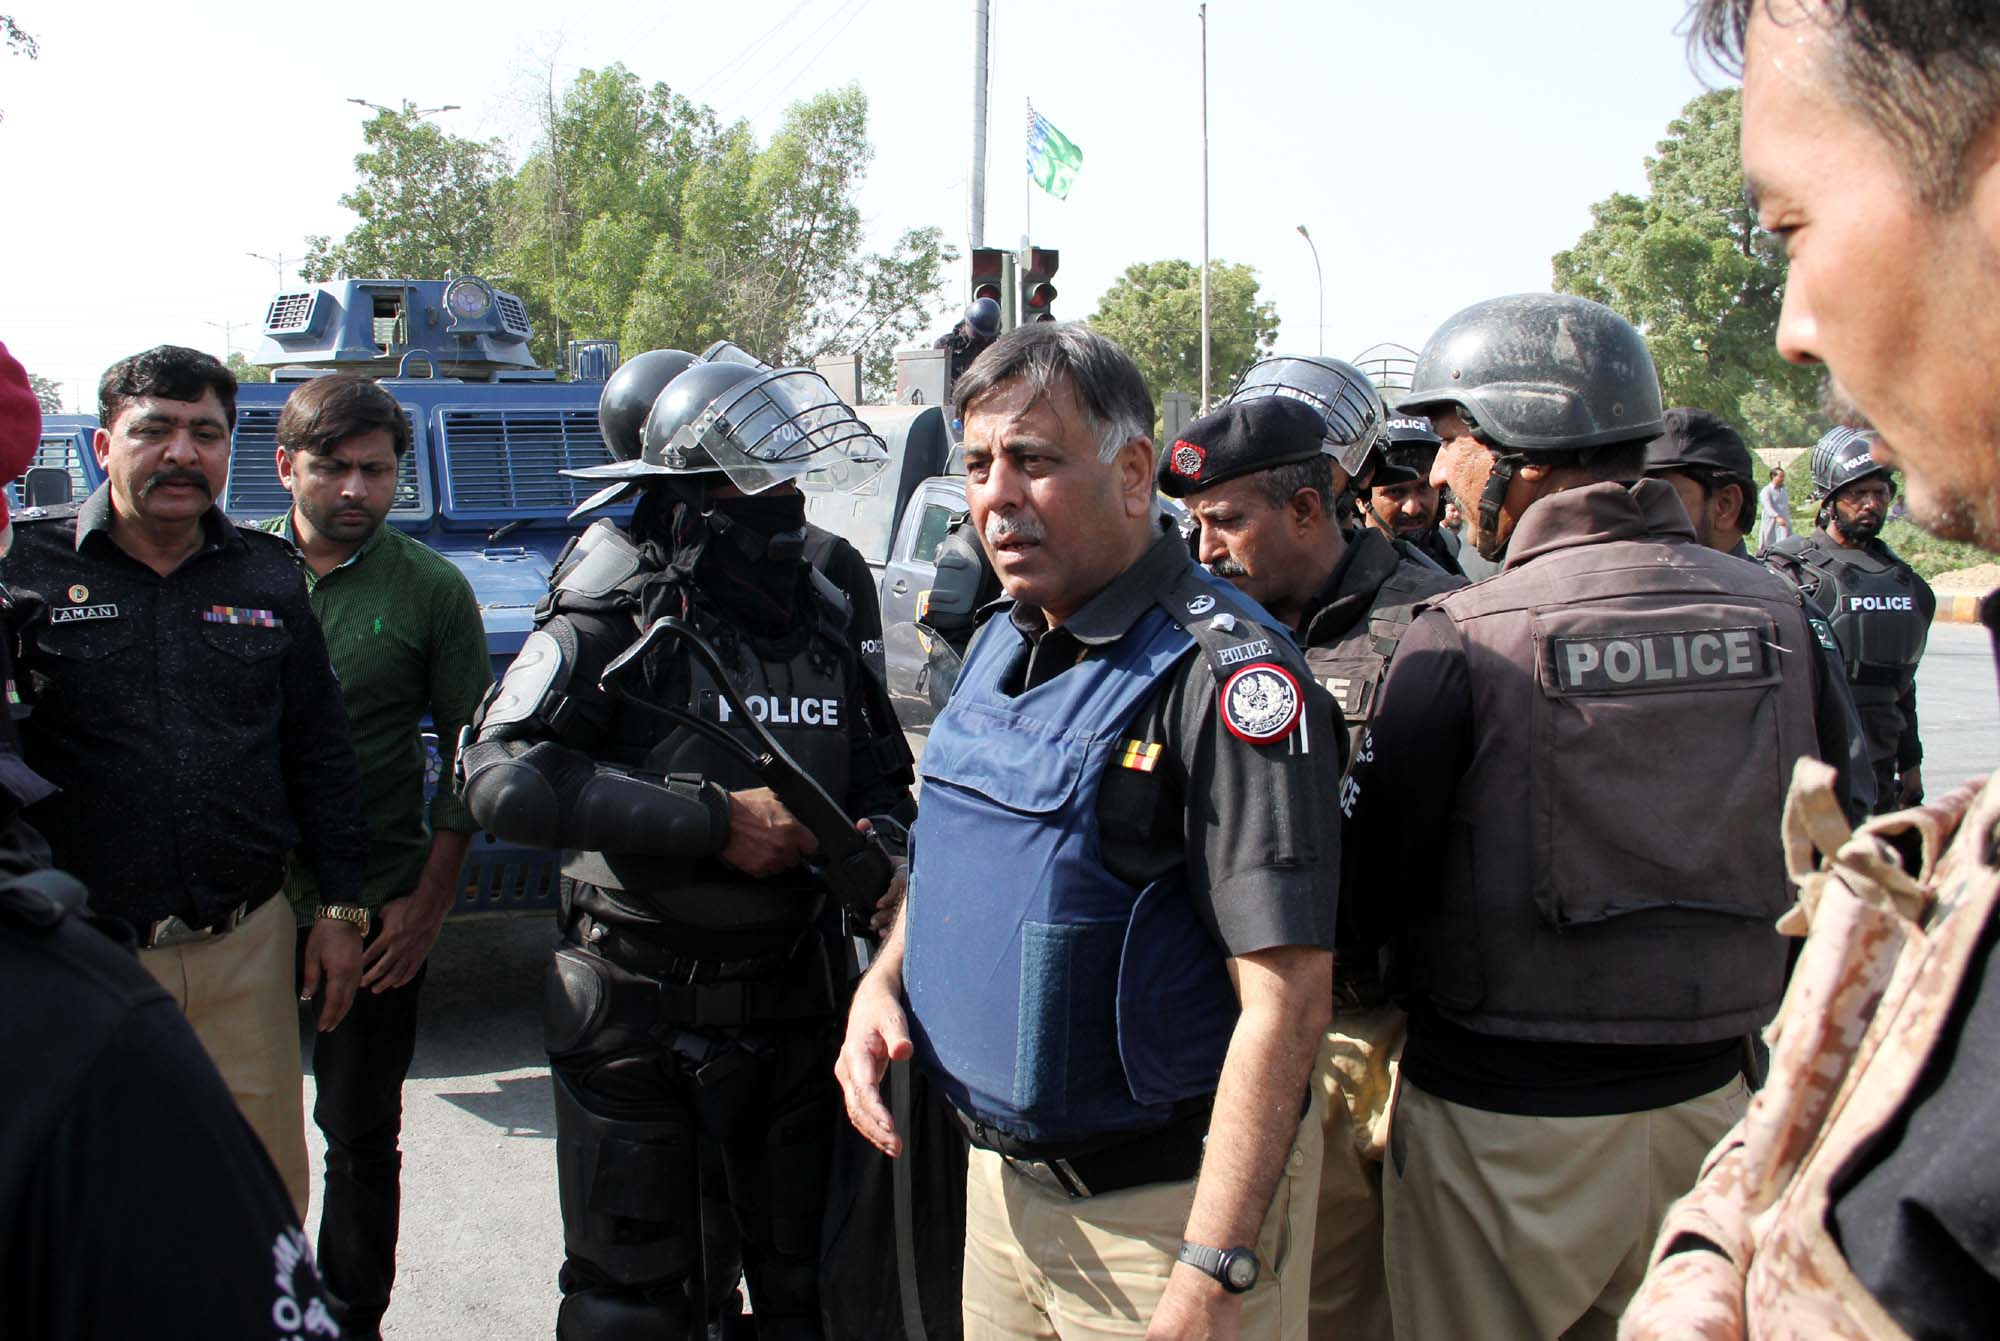 ssp rao anwar was at the forefront during the clash between police and protesters at star gate on saturday photo athar khan express